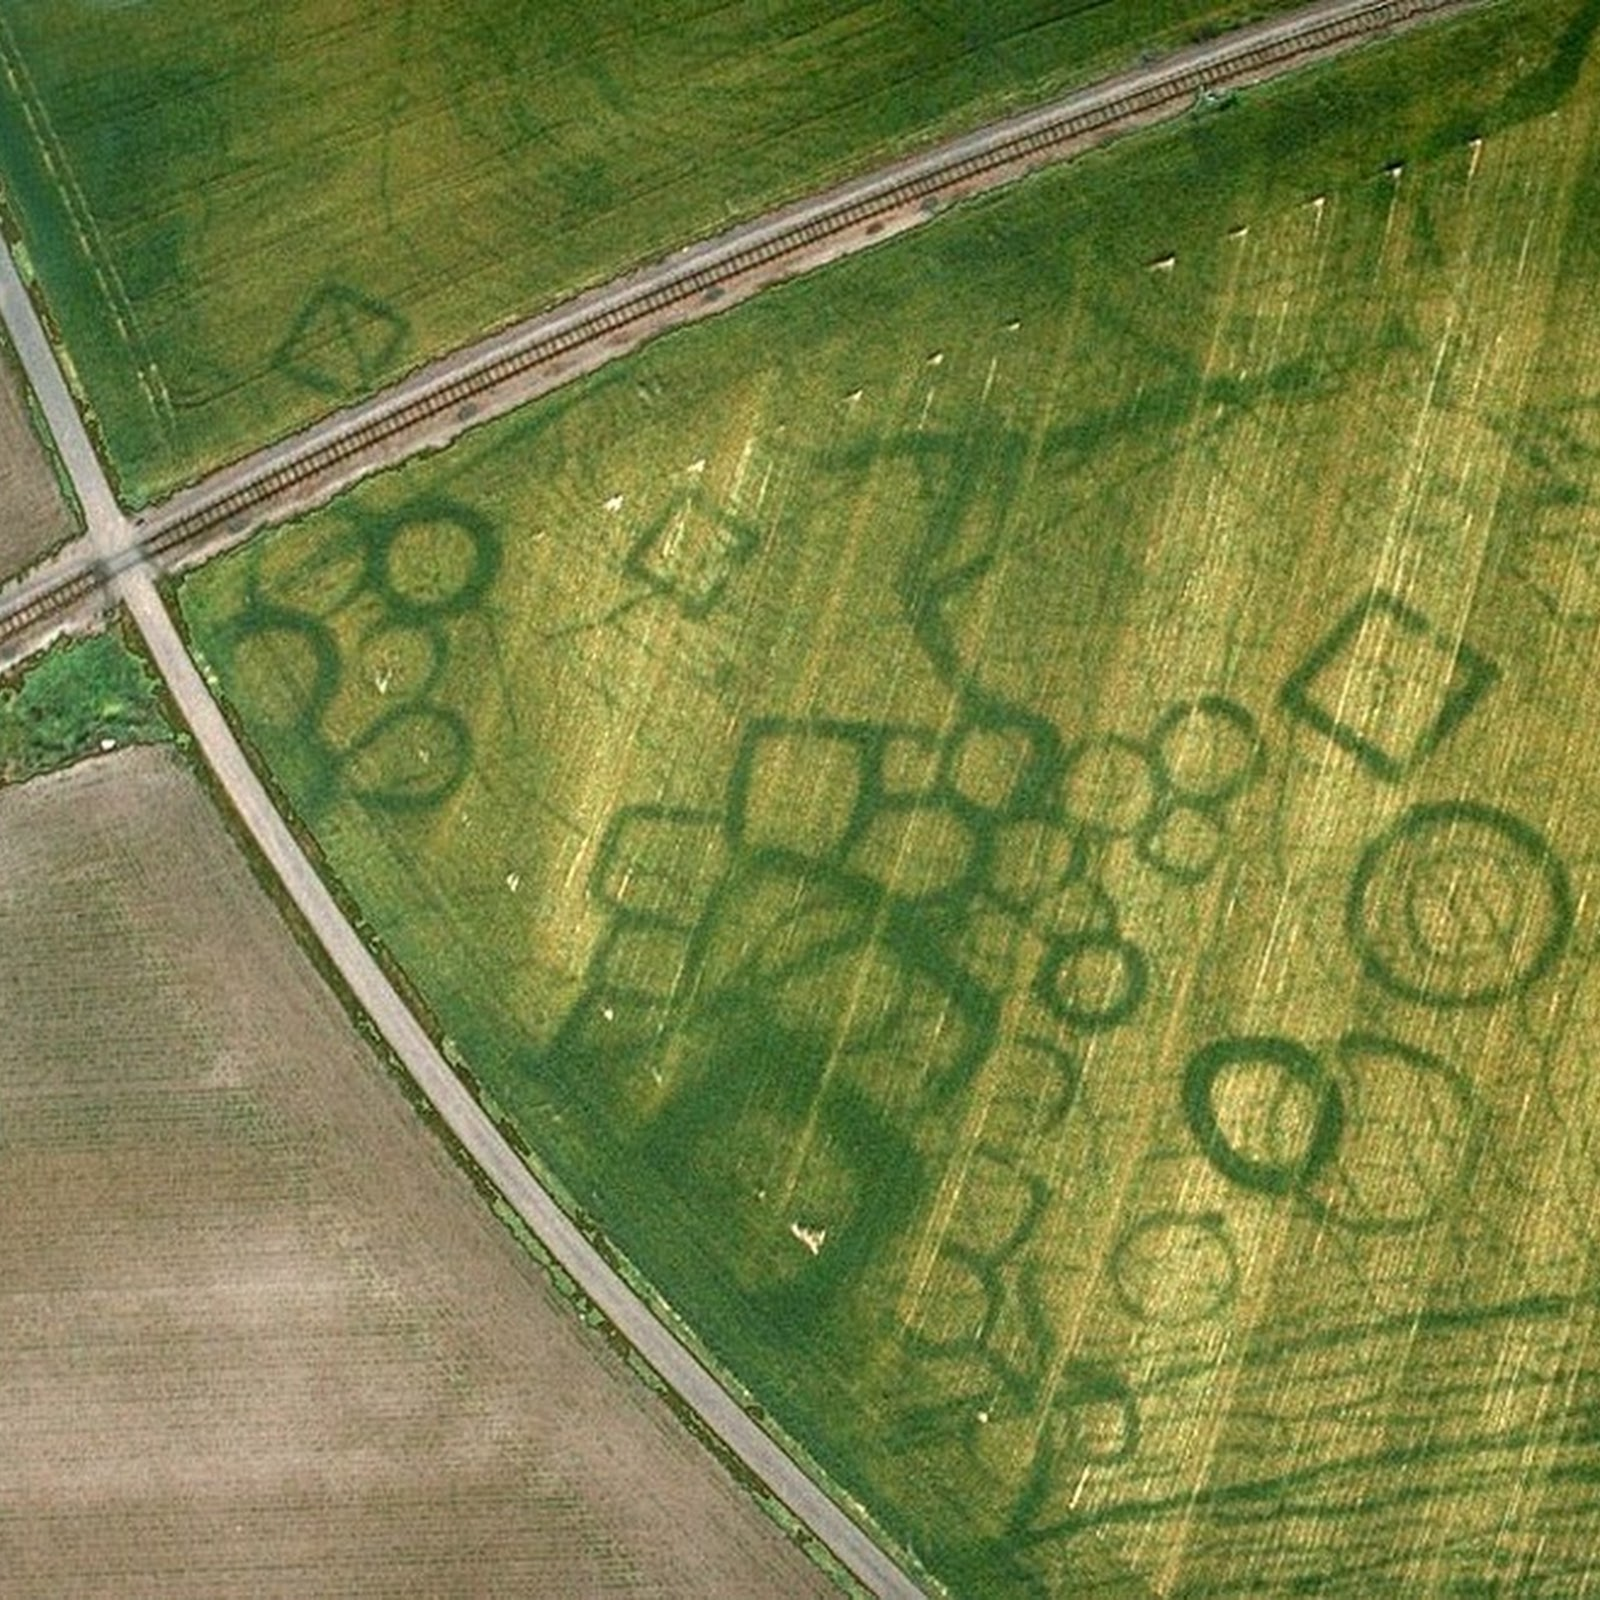 Cropmarks: How Dry Weather Can Reveal Hidden Archaeological Sites